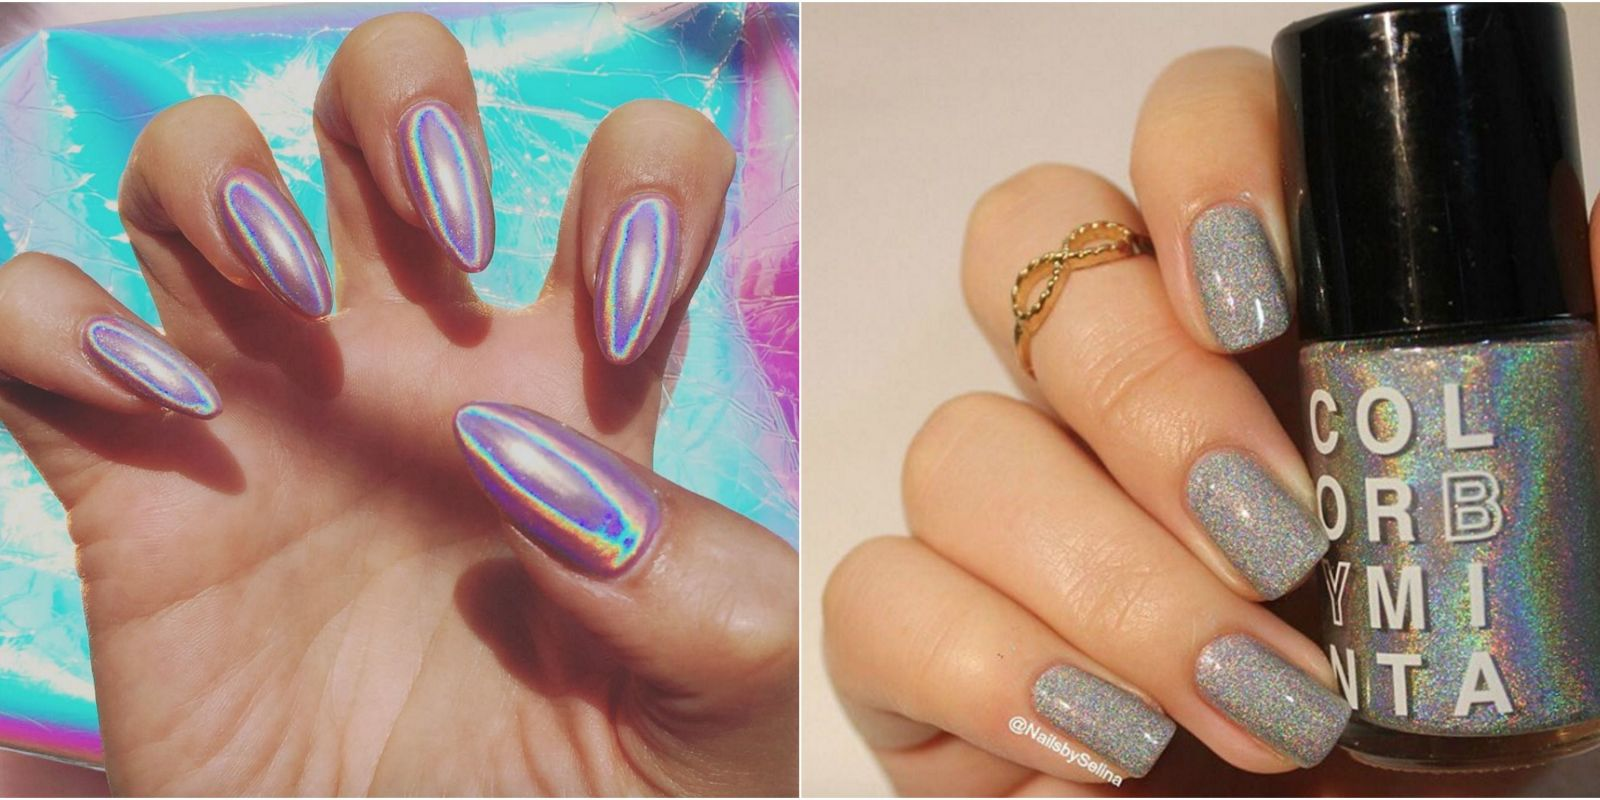 Save Nail Designs 2017 Idea